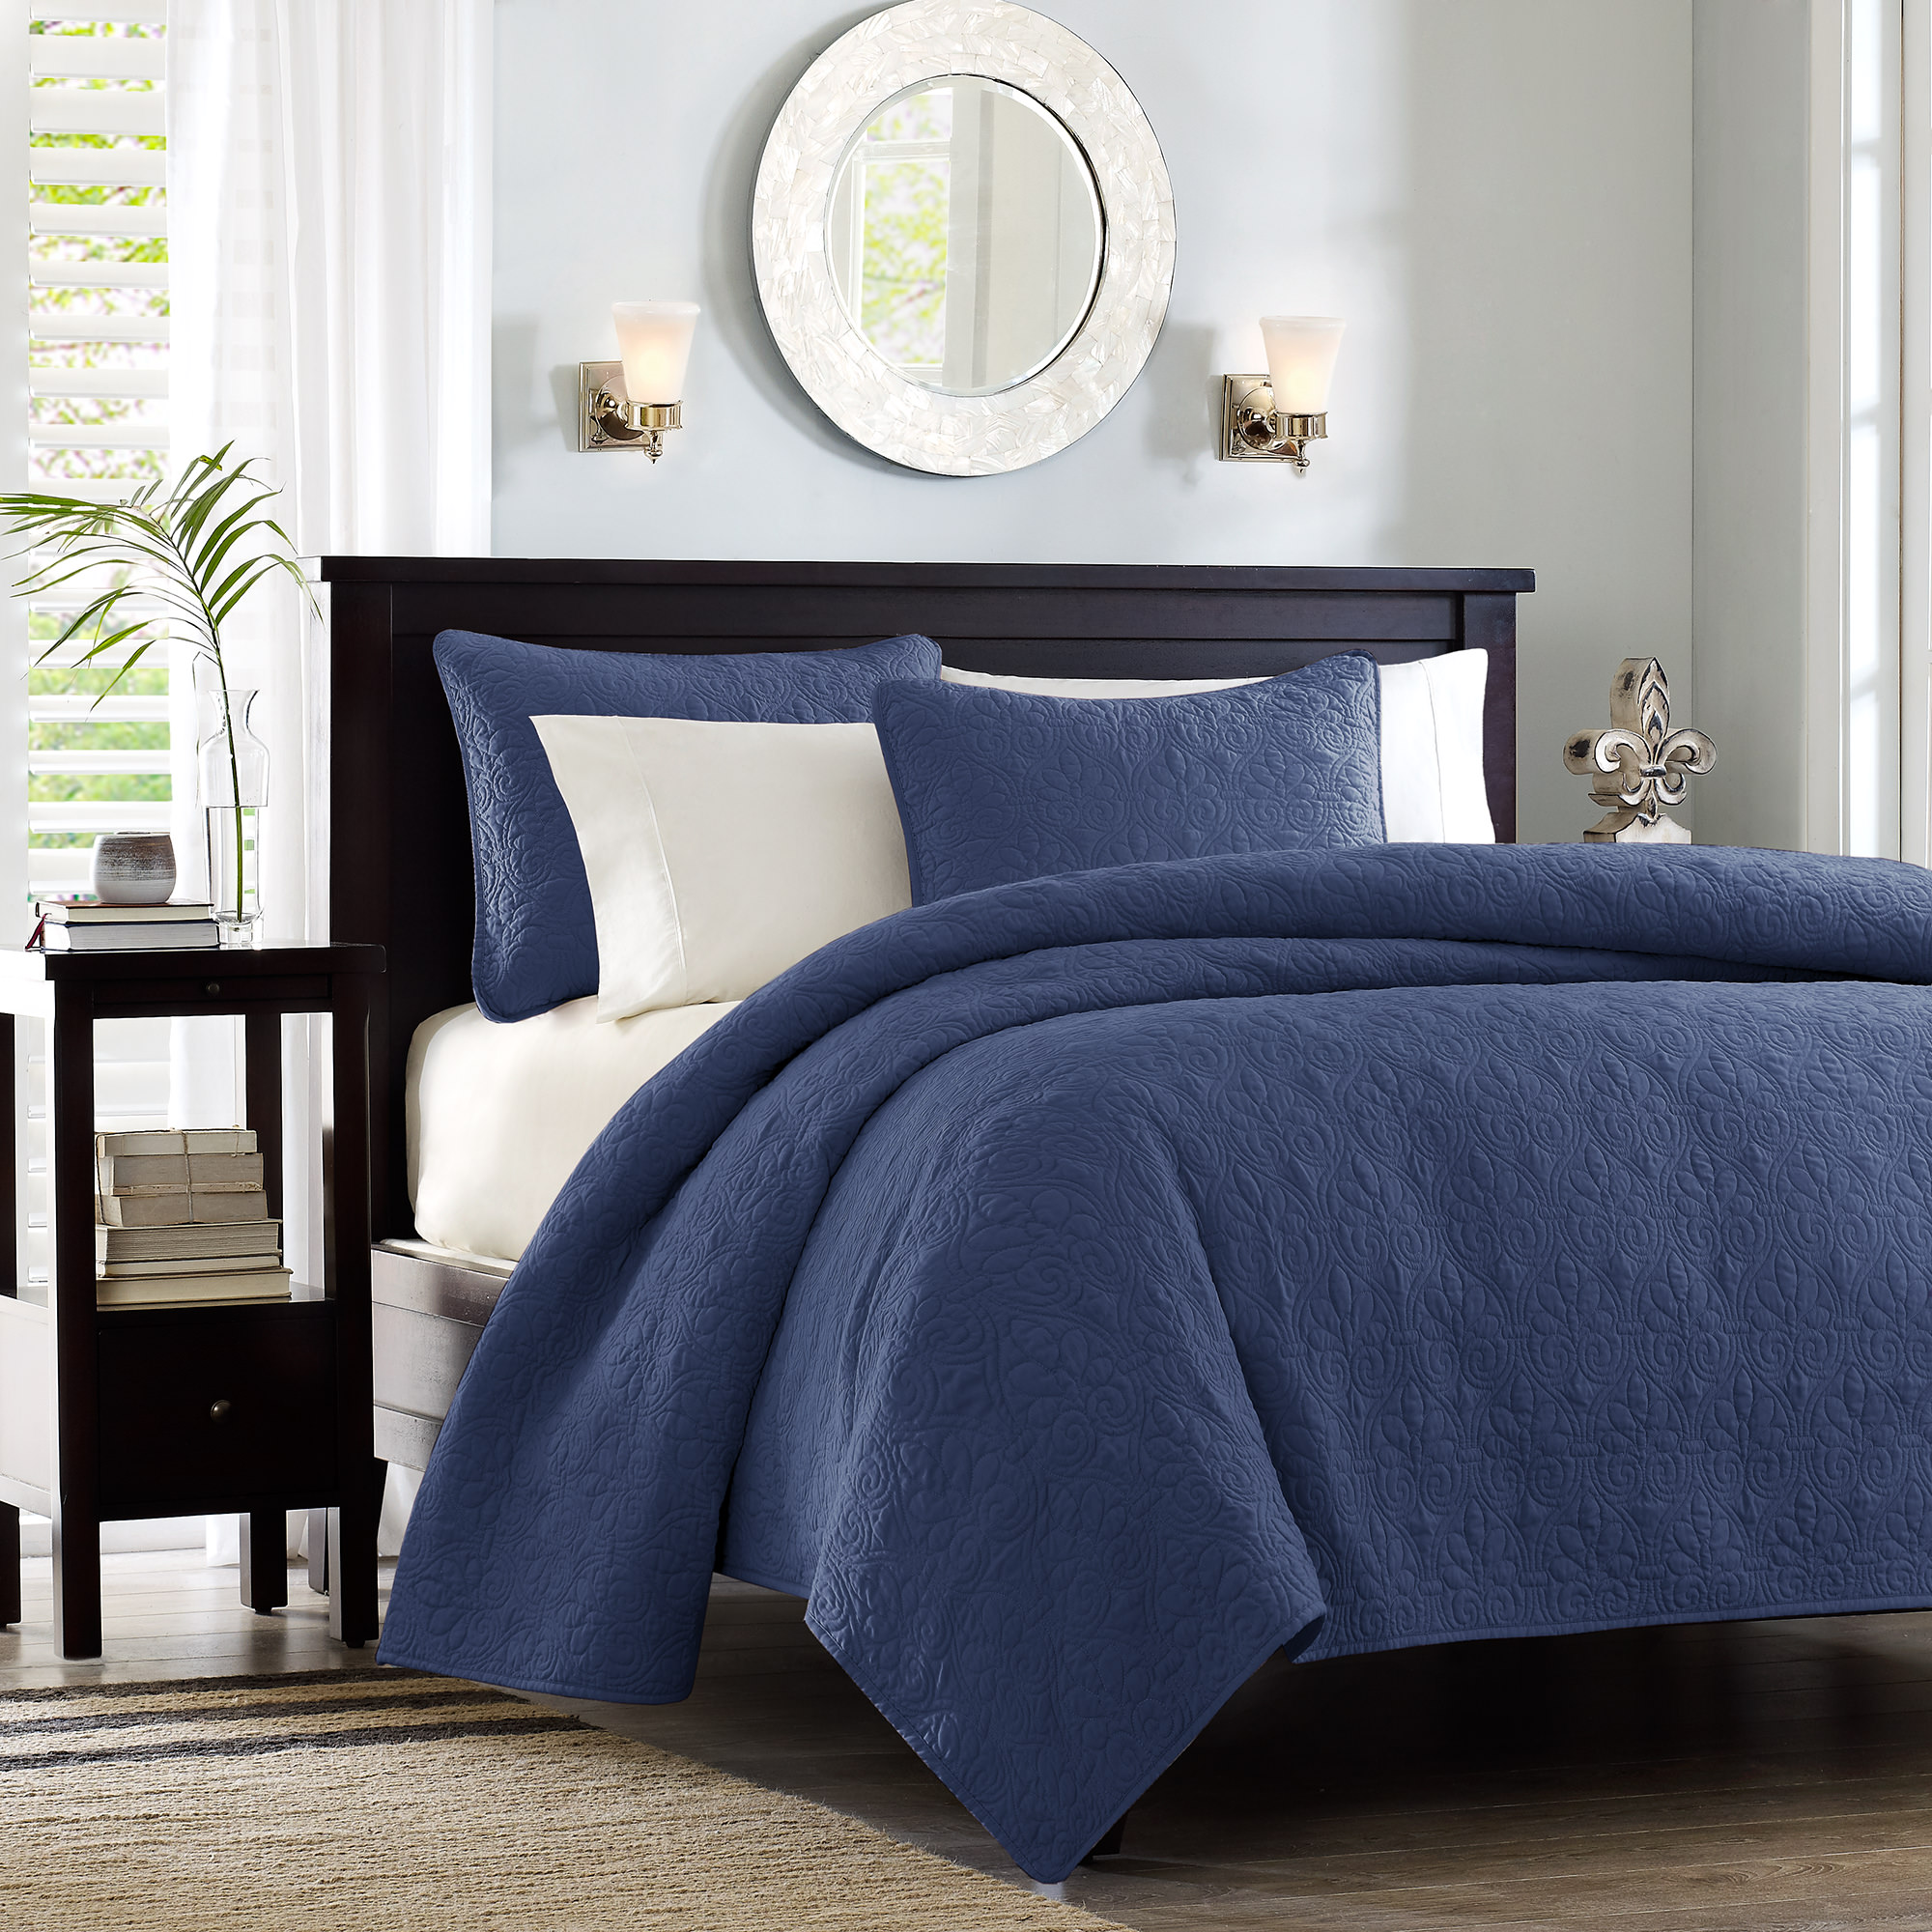 Home Essence Vancouver Quilted Super Soft Coverlet Mini Set by E&E Co. Ltd